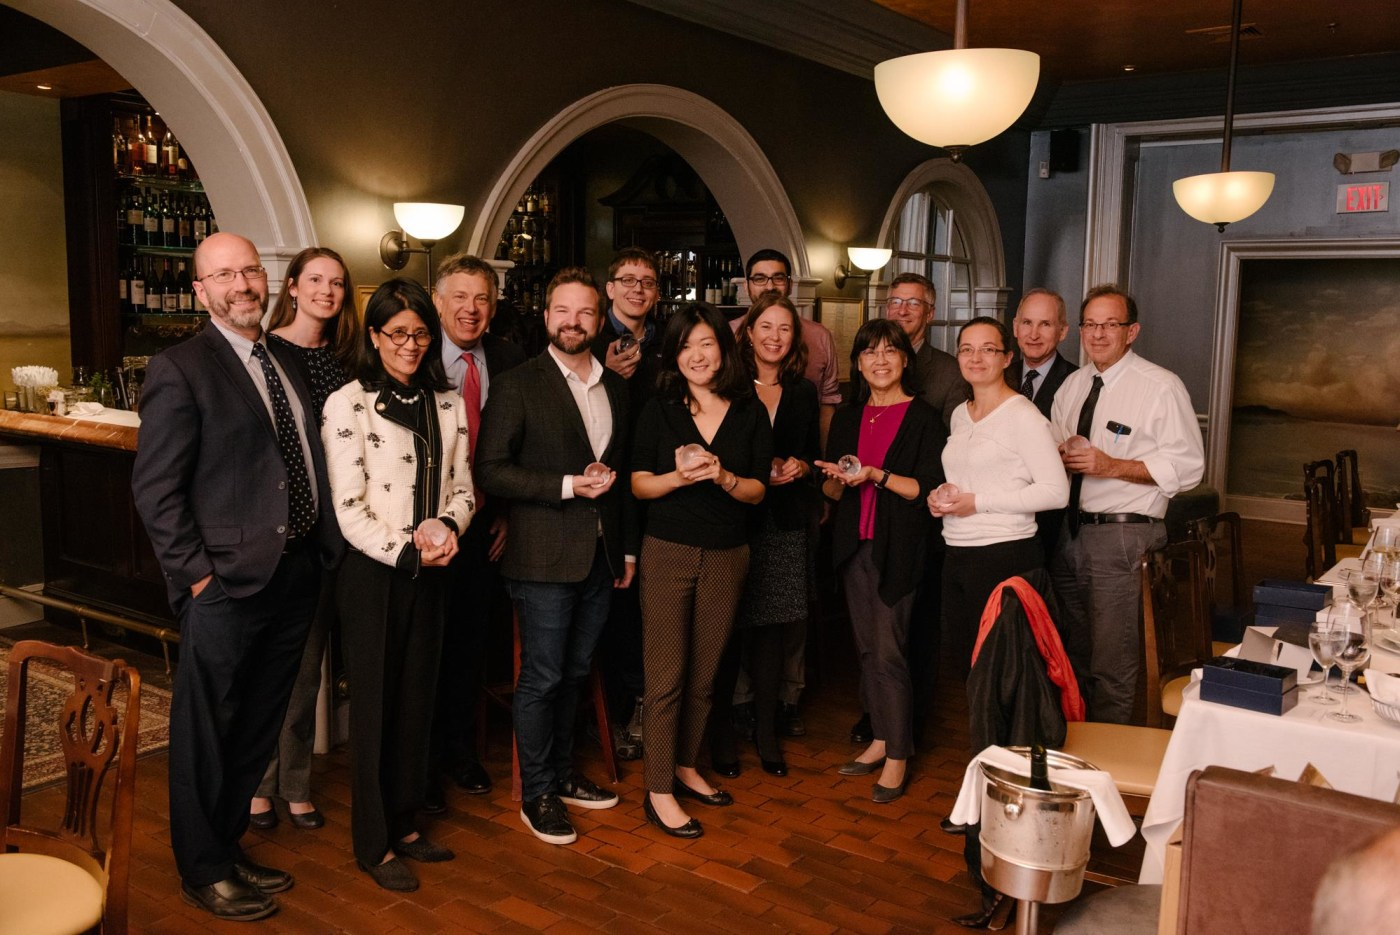 group photo of speakers at dinner